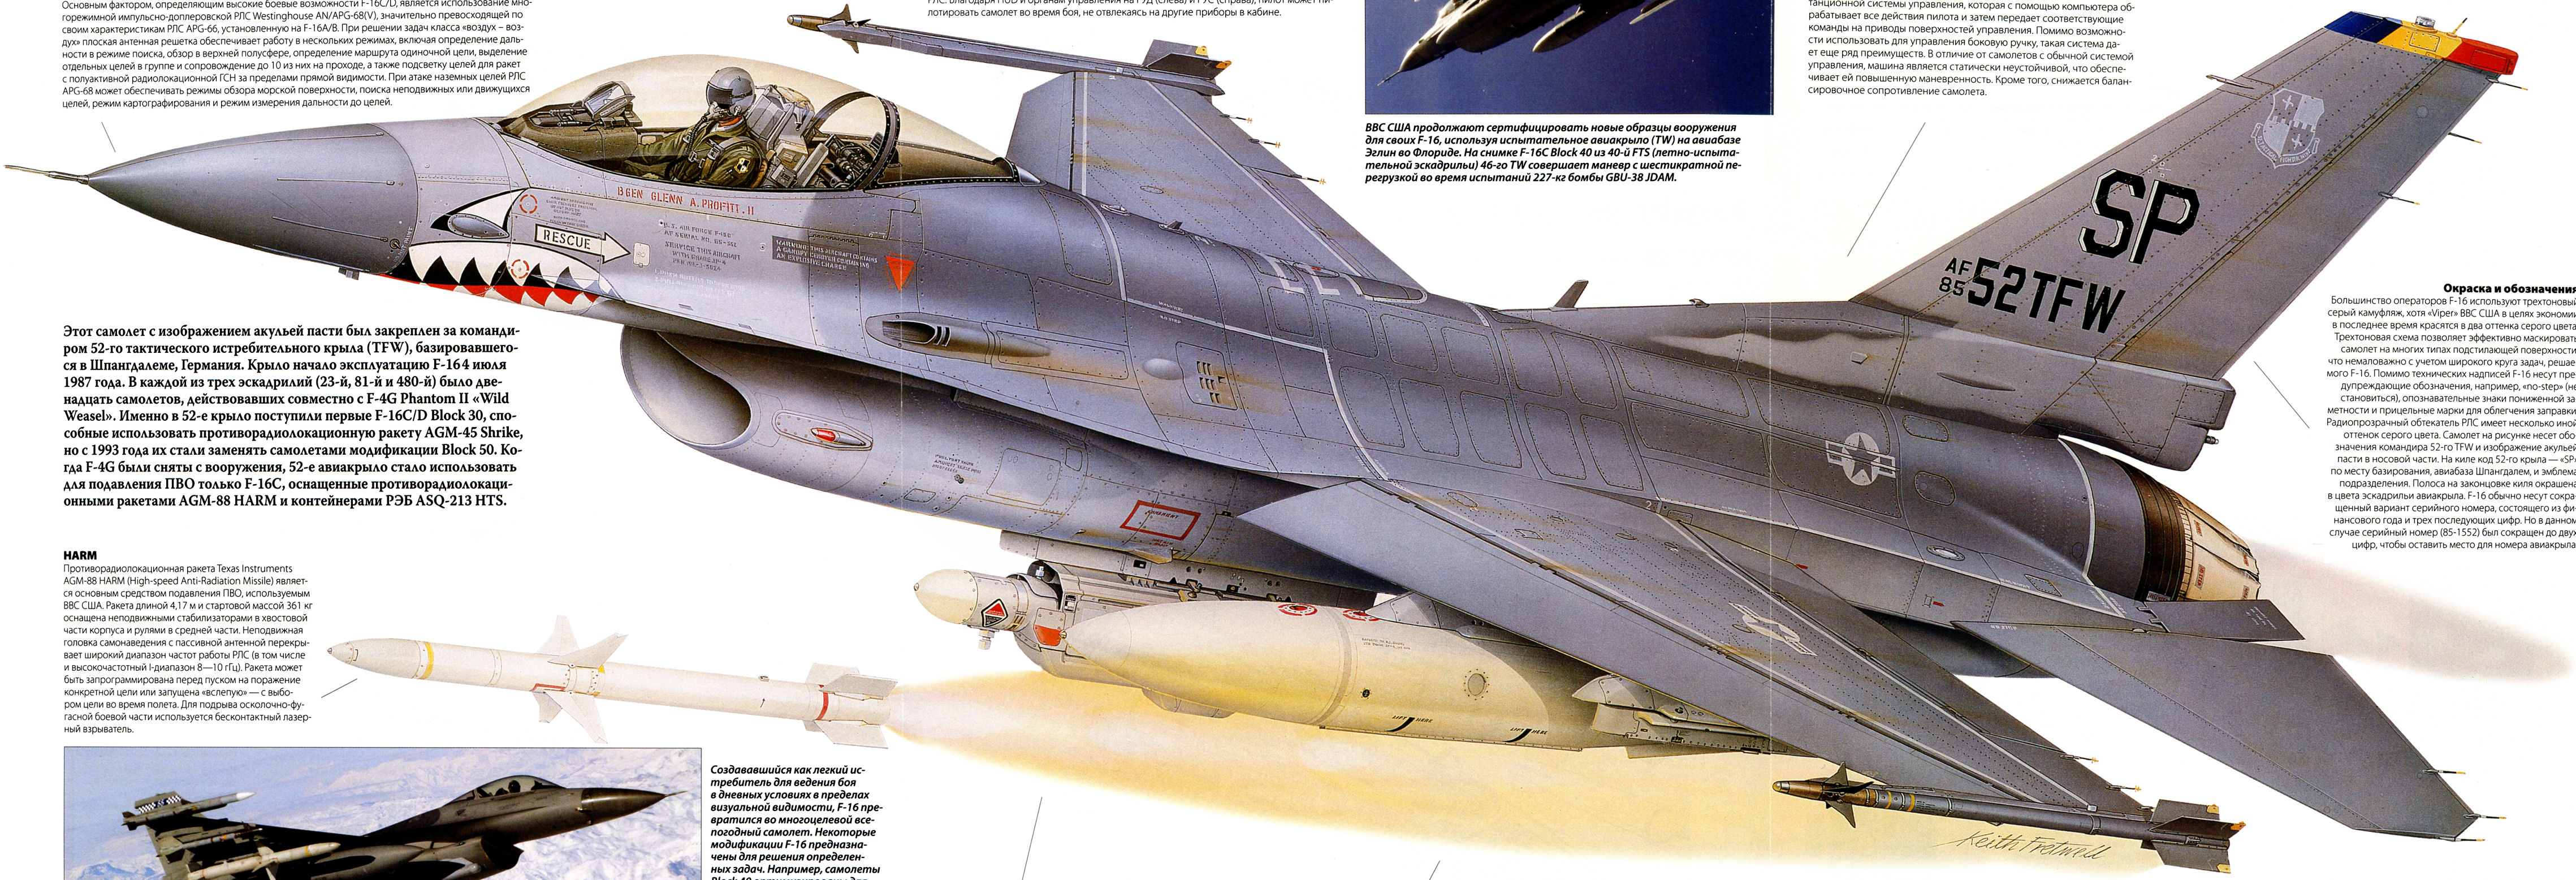 General Dynamics F-16A/C/E Fighting Falcon